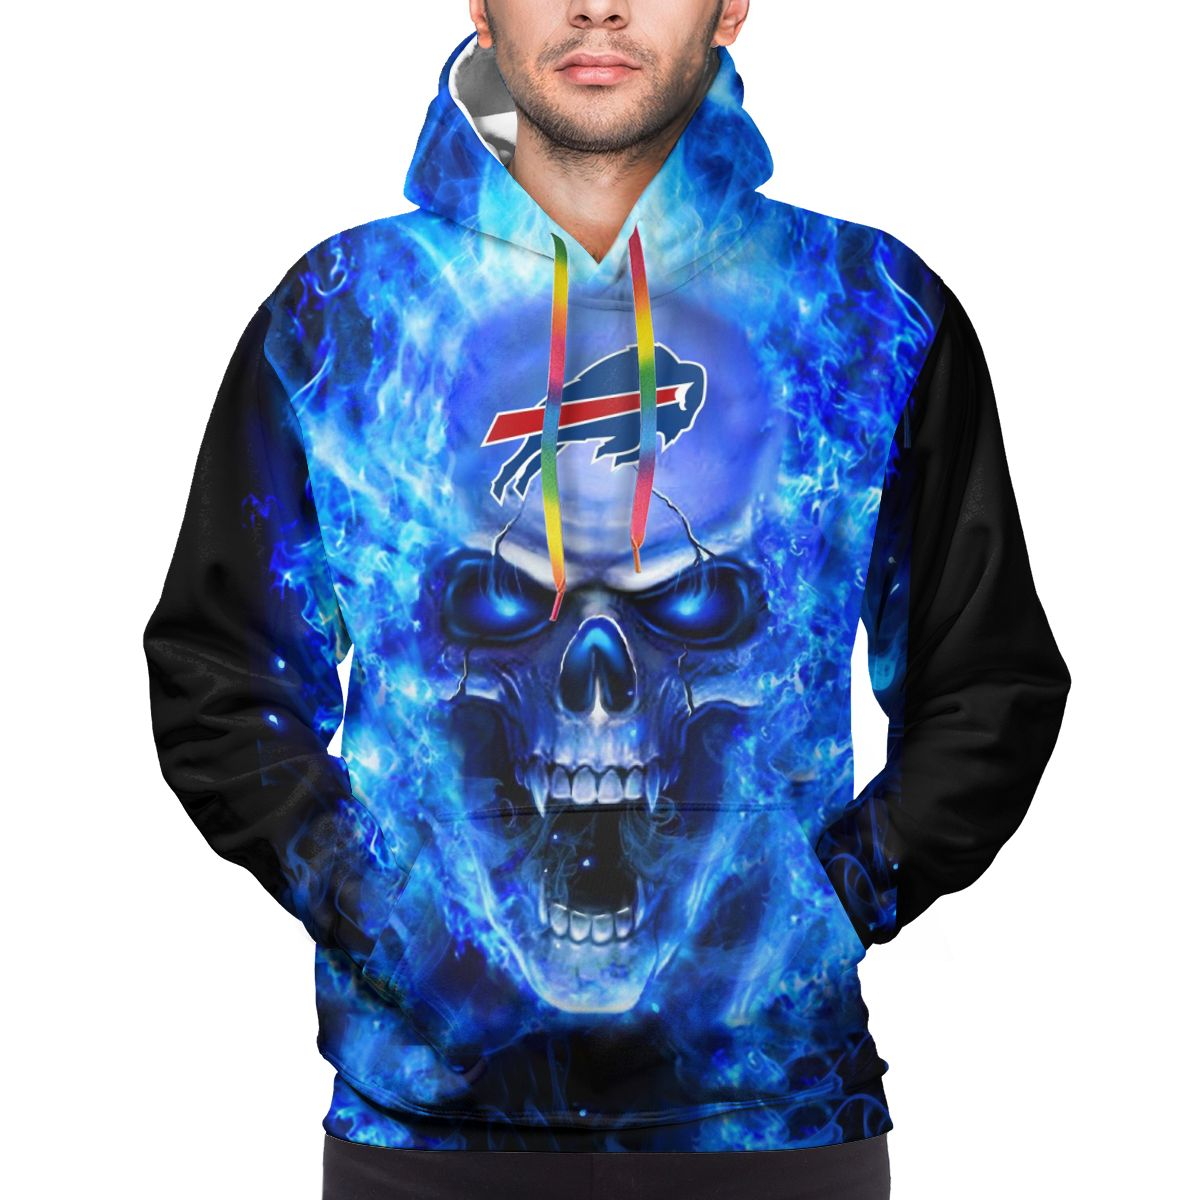 3D Skull Bills Logo Print Hoodies For Men Pullover Sweatshirt